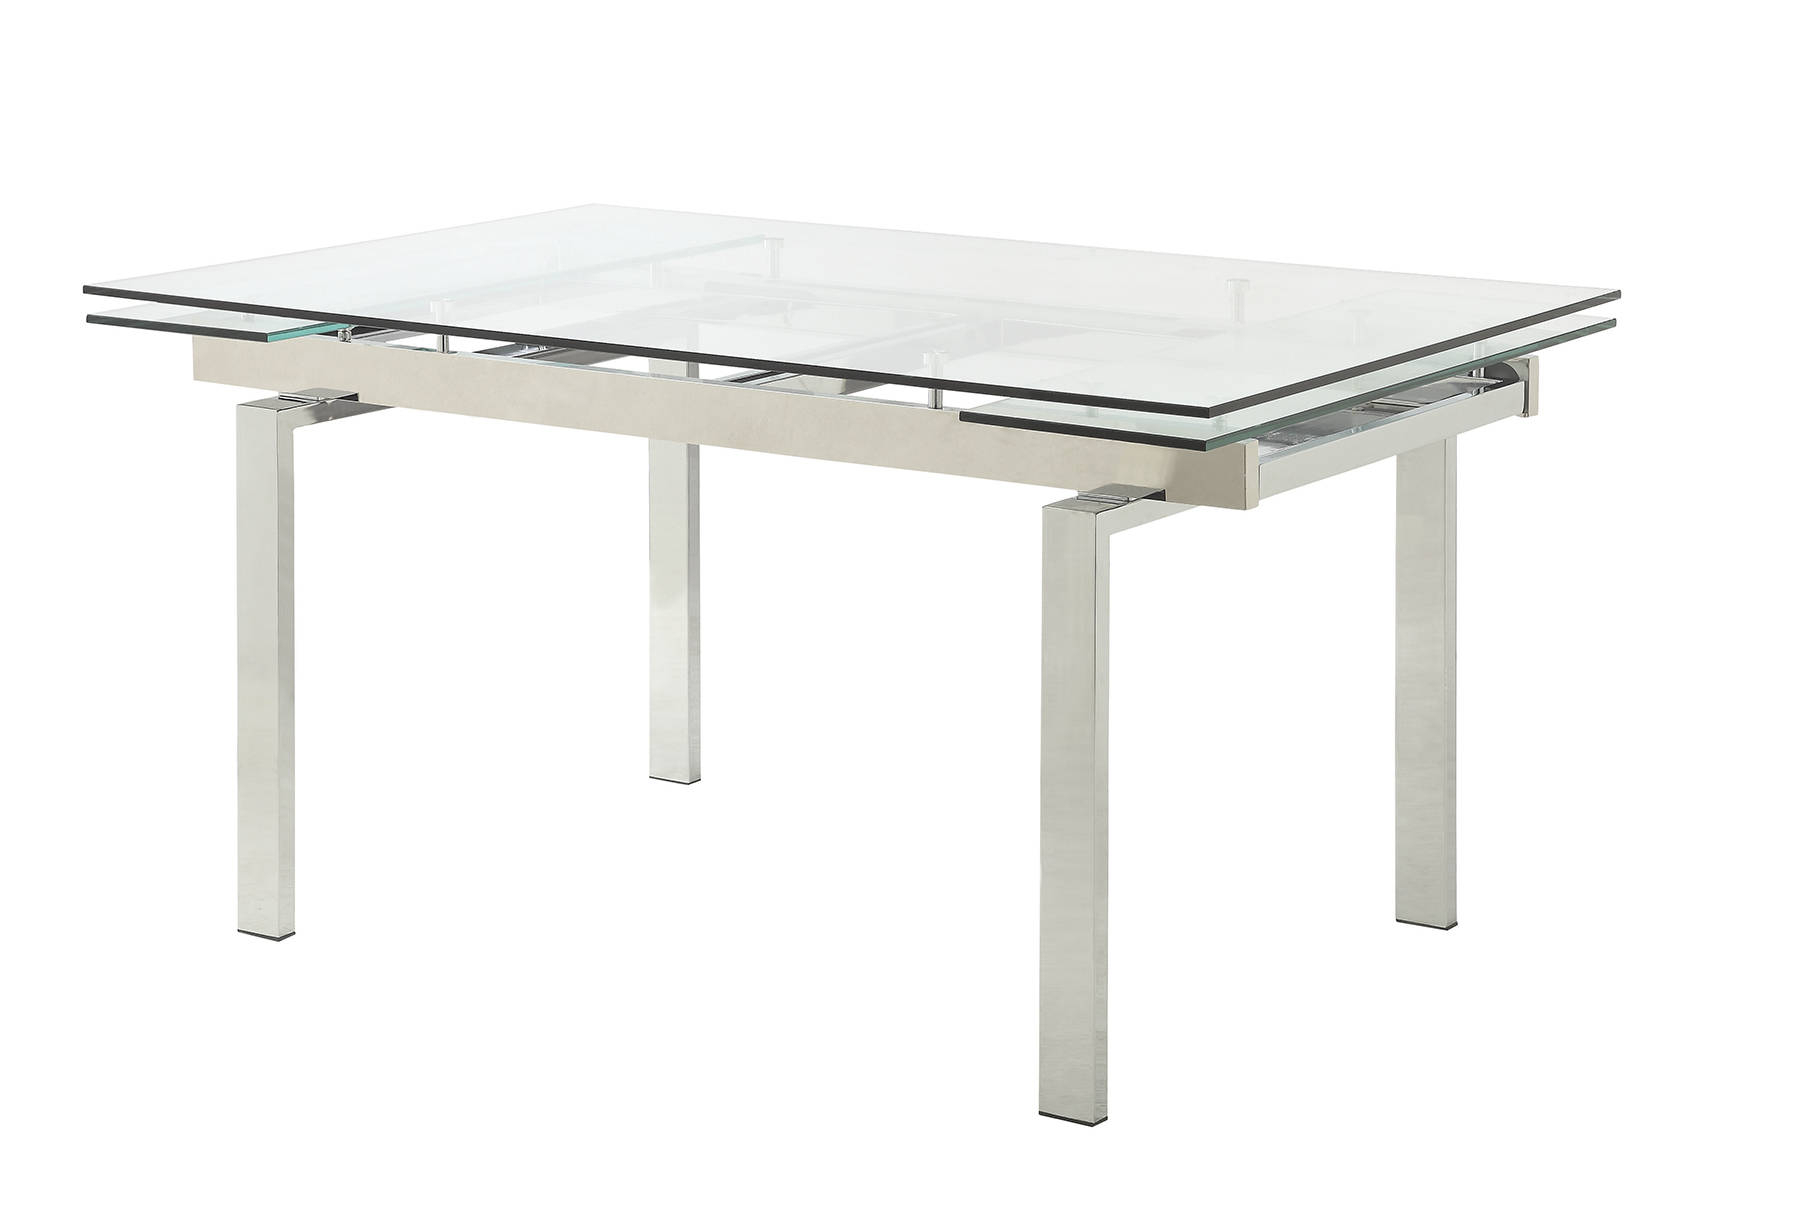 Most Popular Chrome Dining Tables With Tempered Glass Within Wexford Contemporary Chrome Tempered Glass Leaf Extension (View 21 of 25)